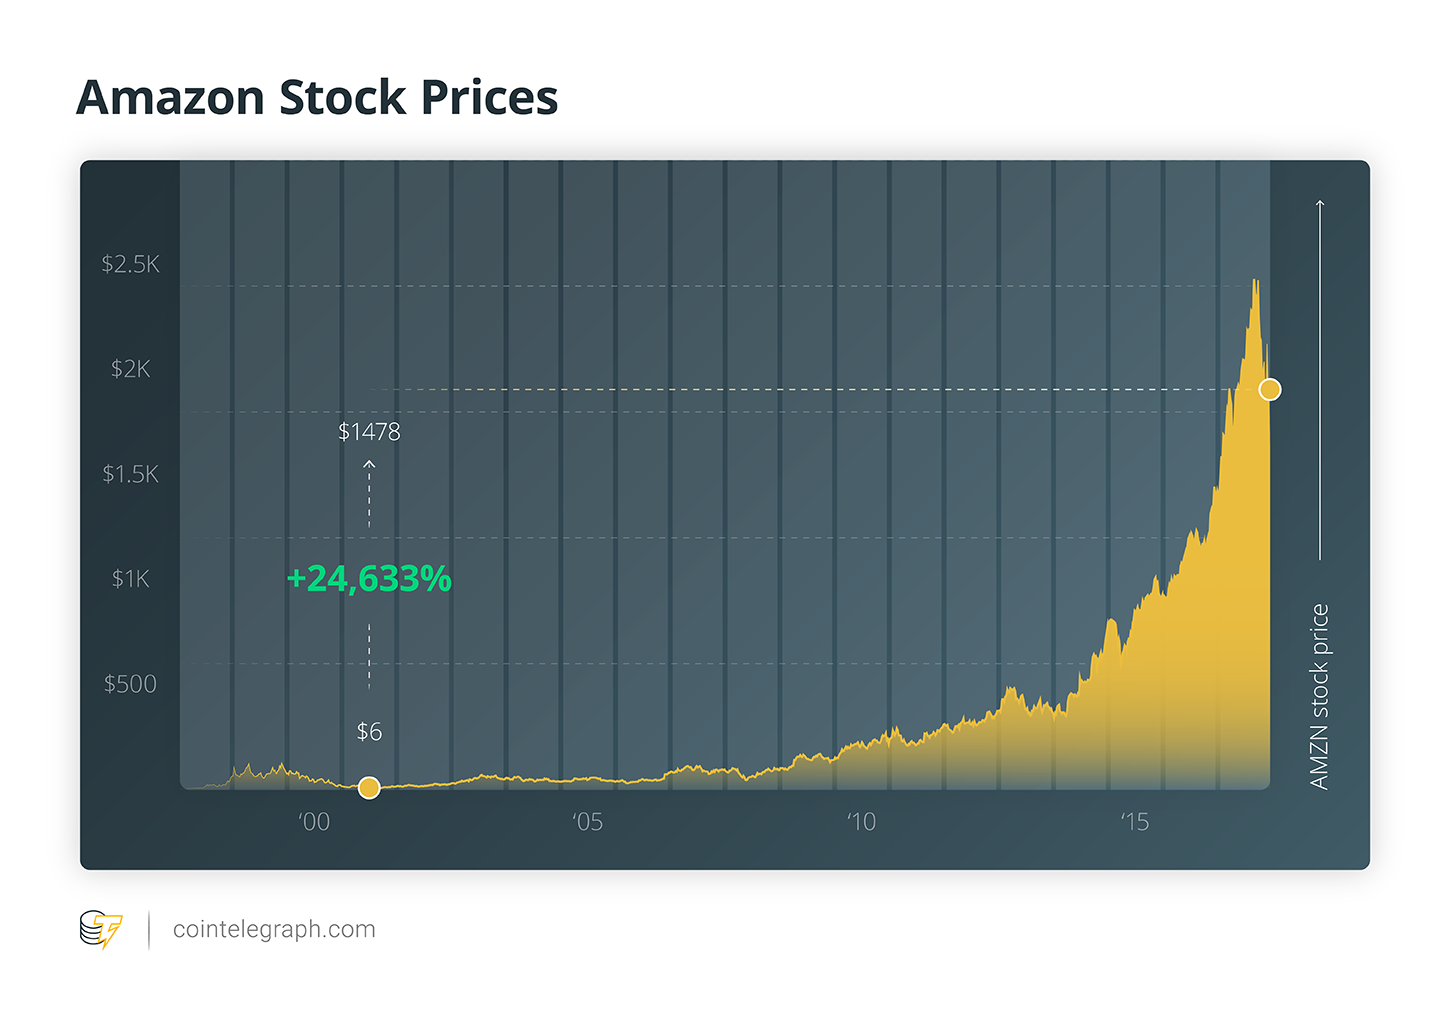 Amazon Stock Prices